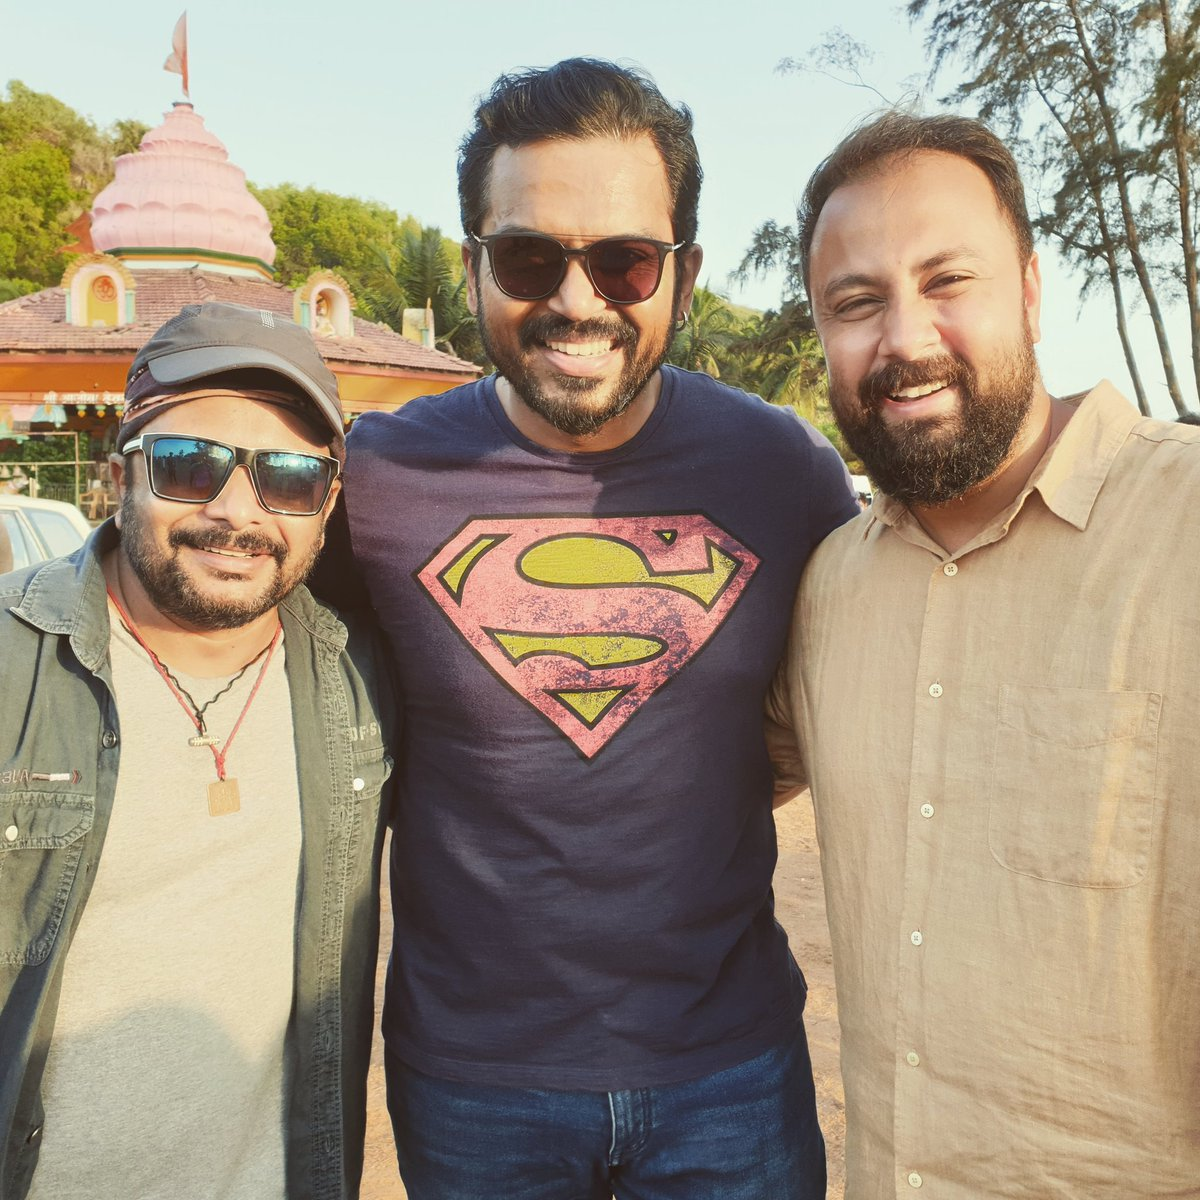 Finished shooting for a peppy song in Goa for the new movie starring @Karthi_Offl directed by #jeethujoseph captured by #rdrajasekar #GovindVasantha bro thanks for the lovely track produced by  @viacom18 #parallelmindsproductions @surajsadanah #Goa #choreographerlife